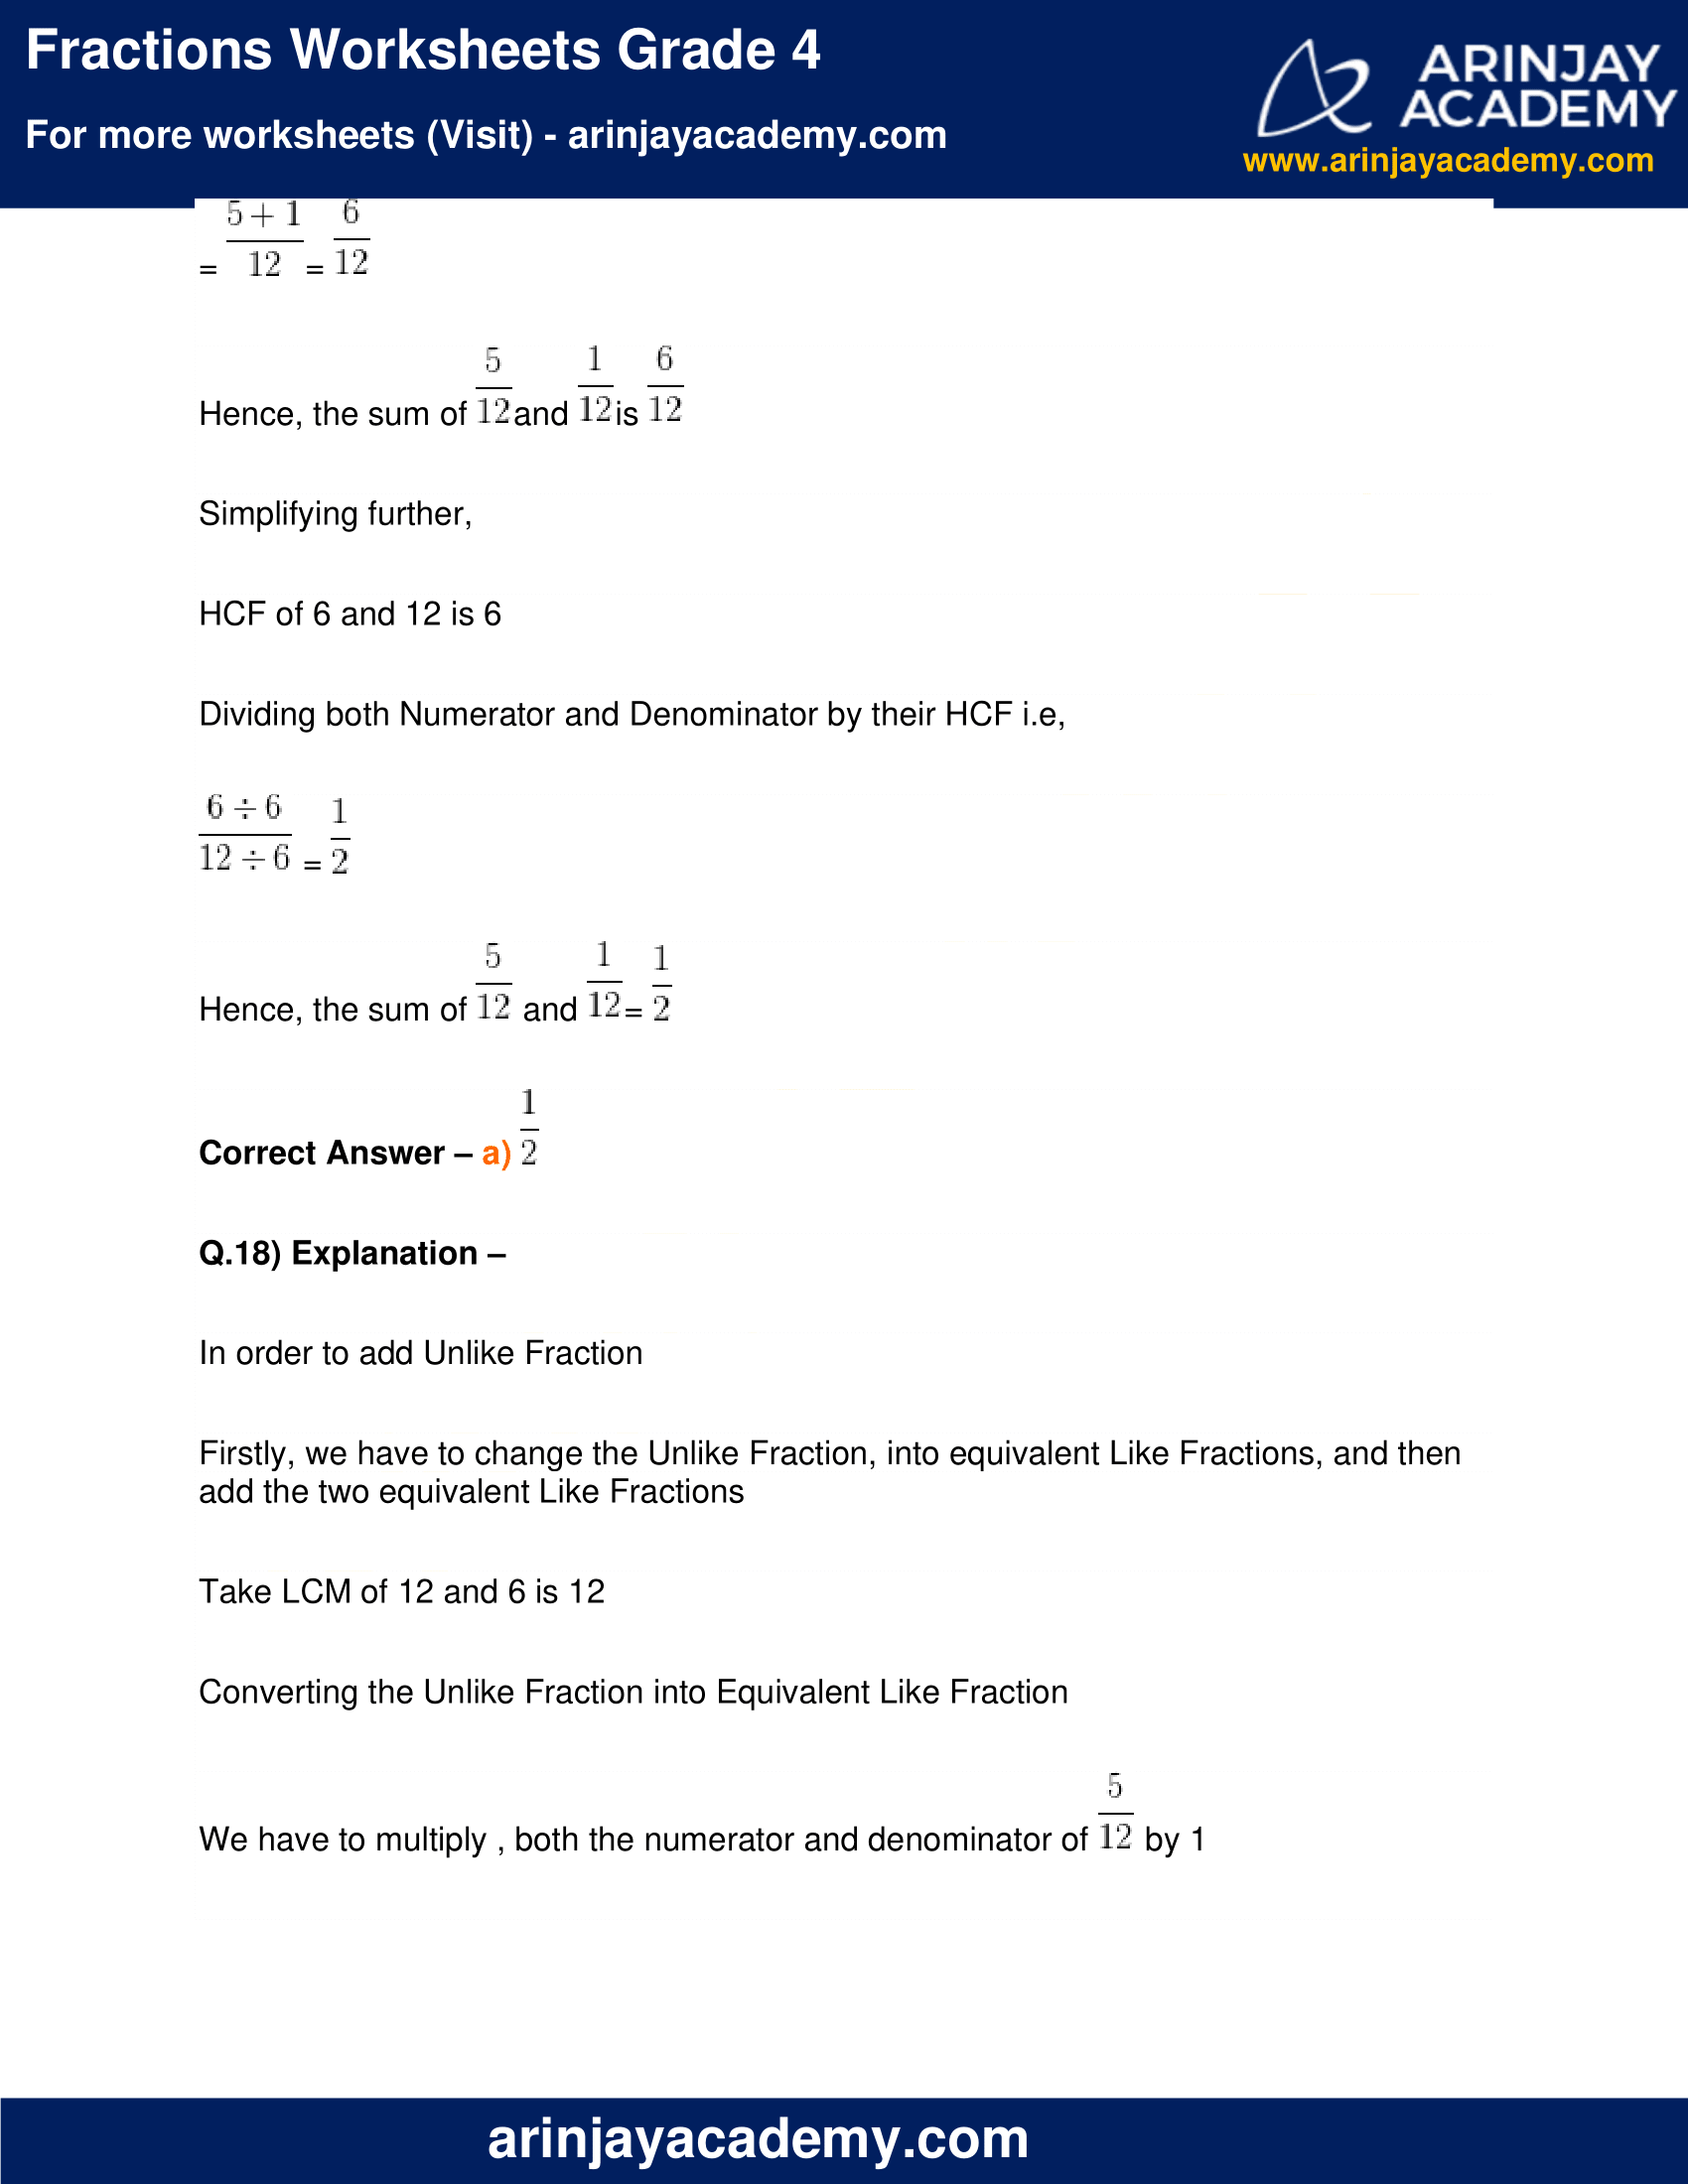 Fractions Worksheets Grade 4